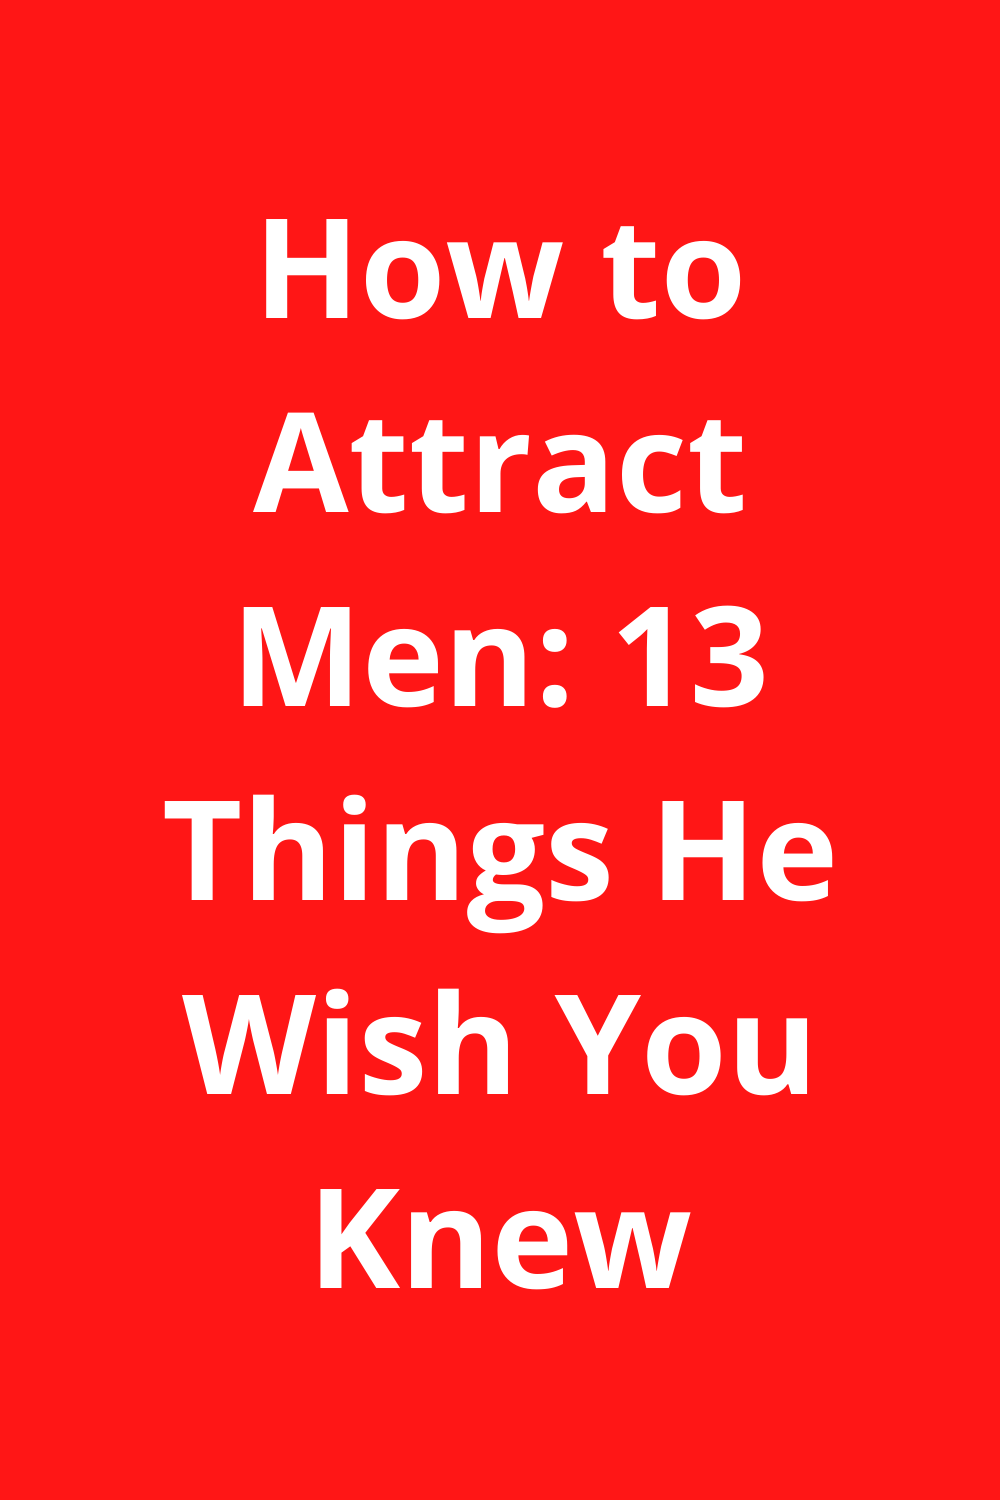 How to Attract Men: 13 Things He Wish You Knew